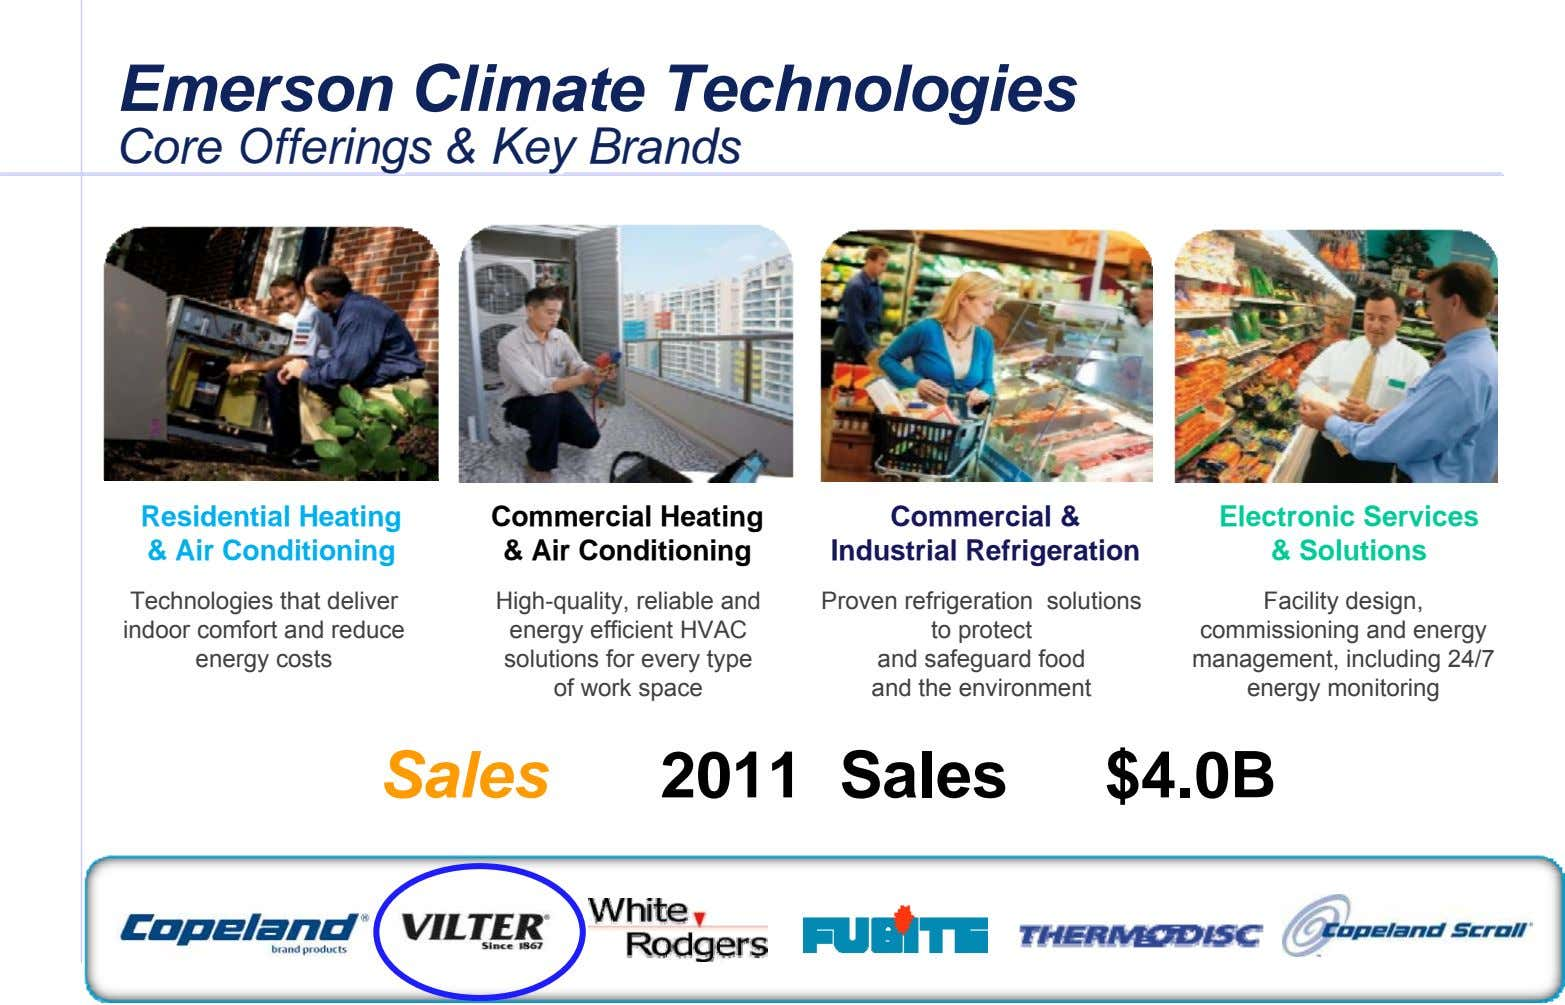 Emerson Emerson Climate Climate Technologies Technologies Core Offerings & Key Brands Core Offerings & Key